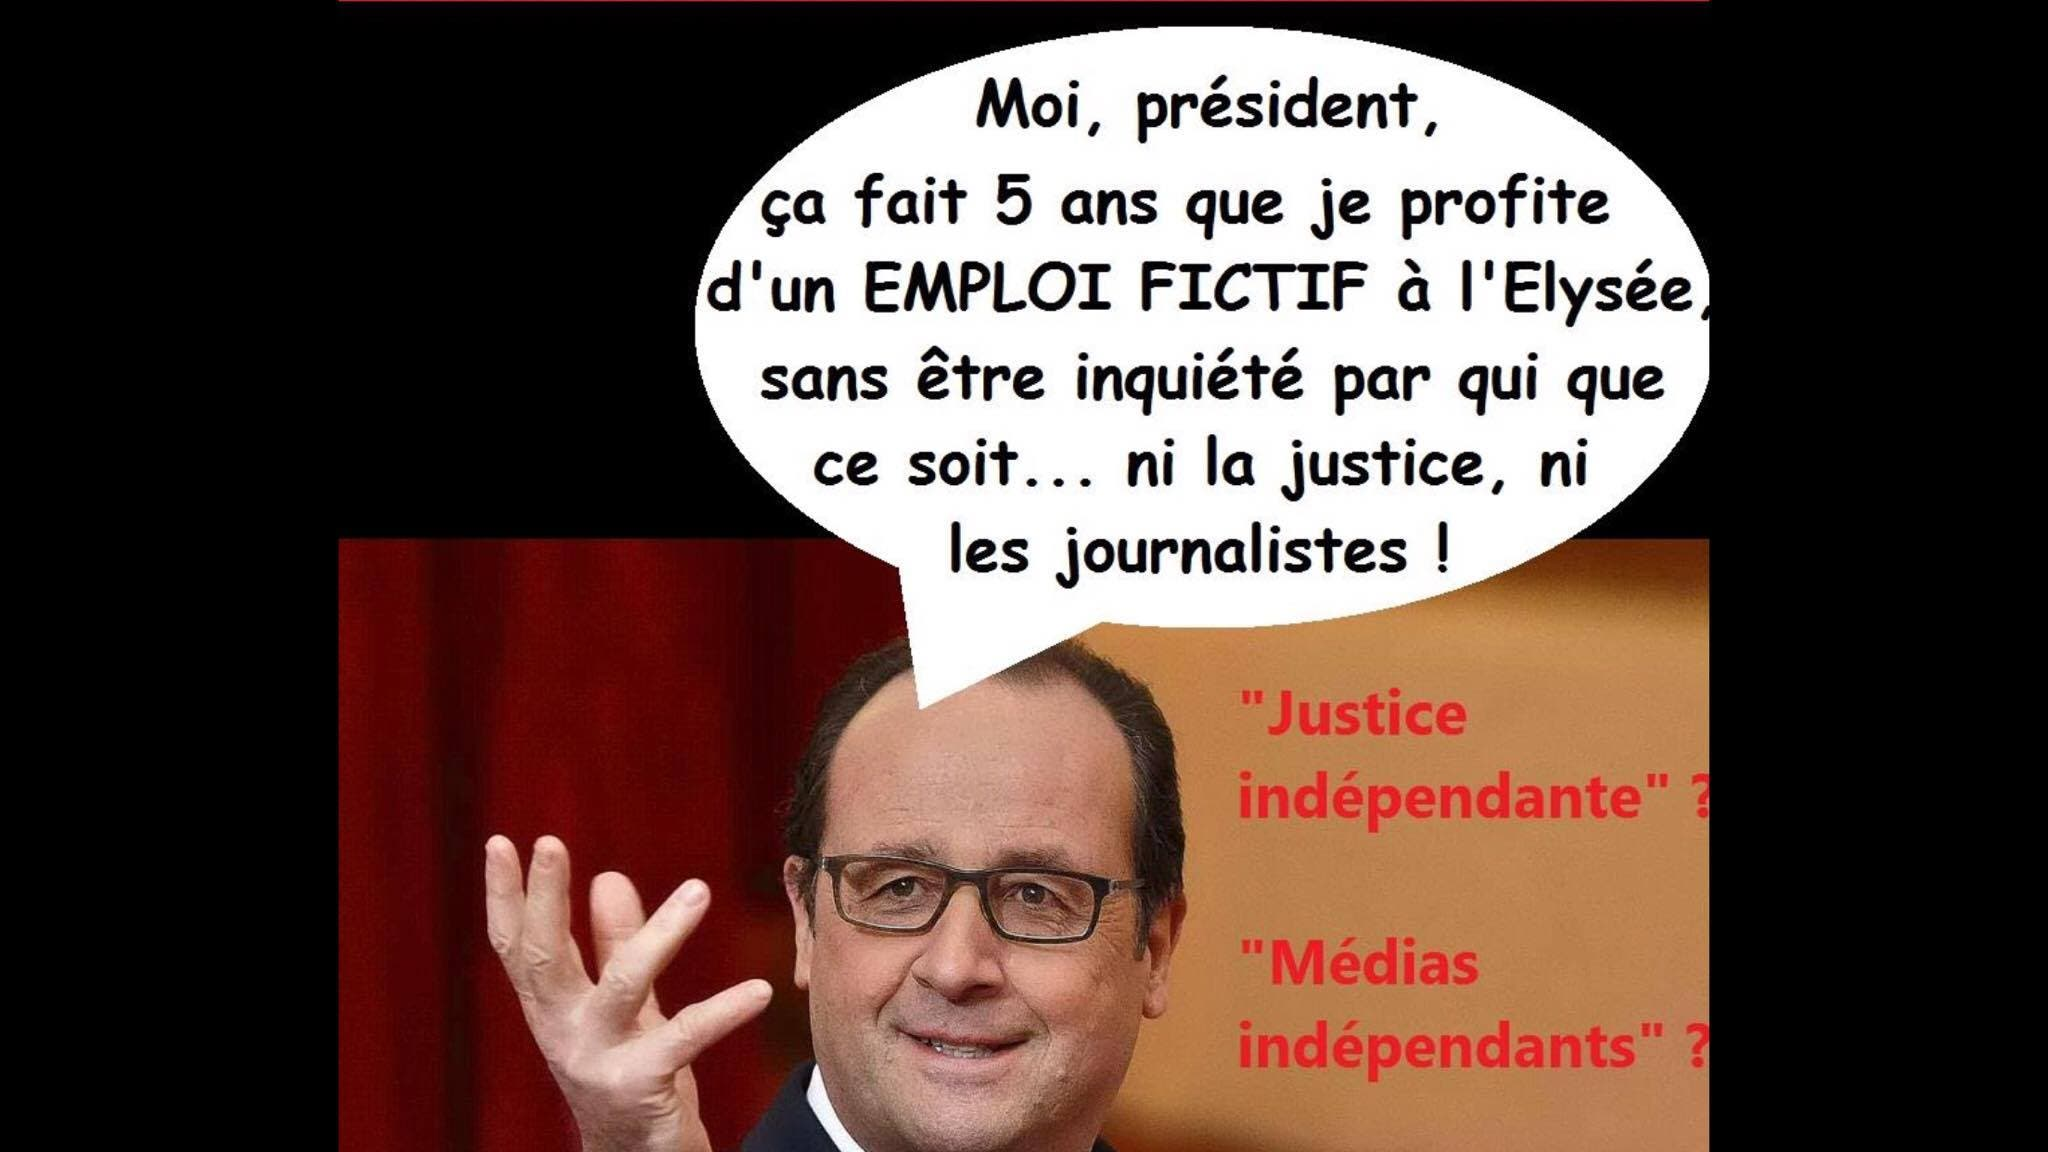 hollande fictif